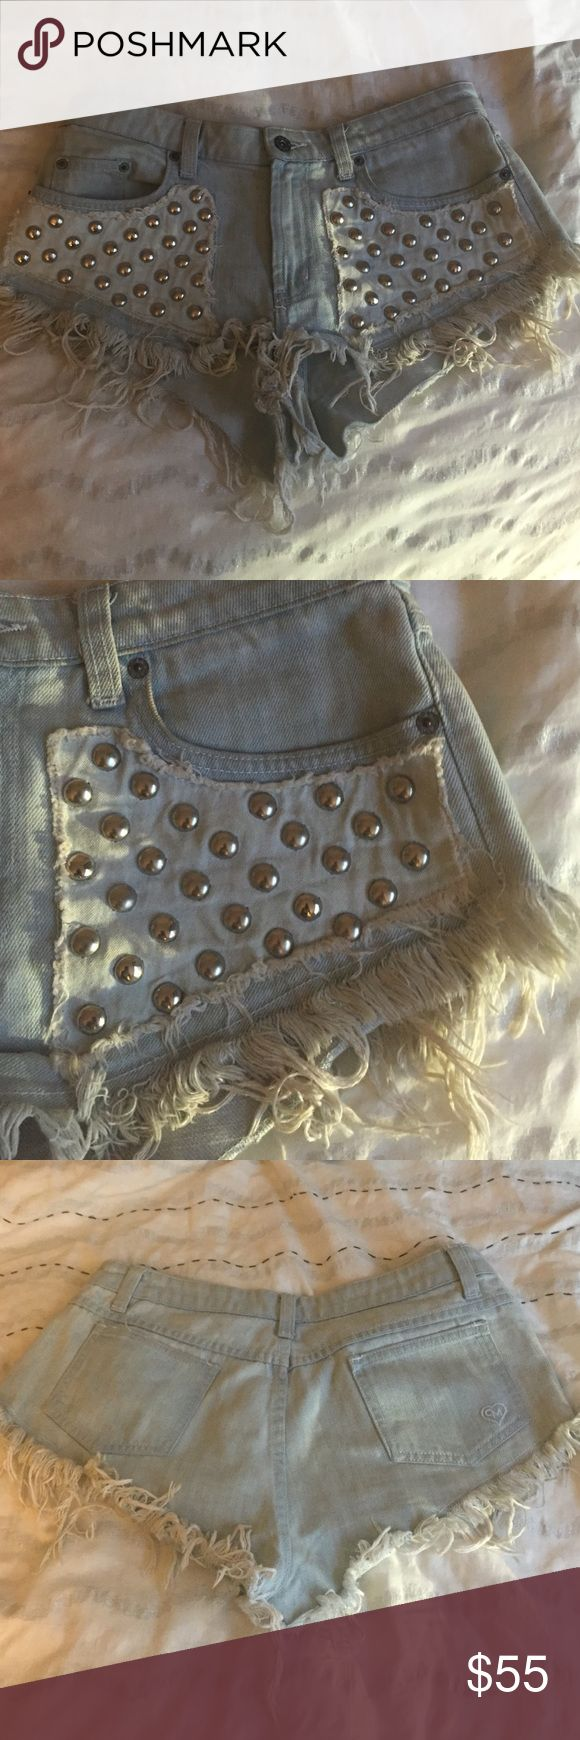 LF Hot Shorts These denim embellished shorts are perfect for daywear or a night out! LF Shorts Jean Shorts